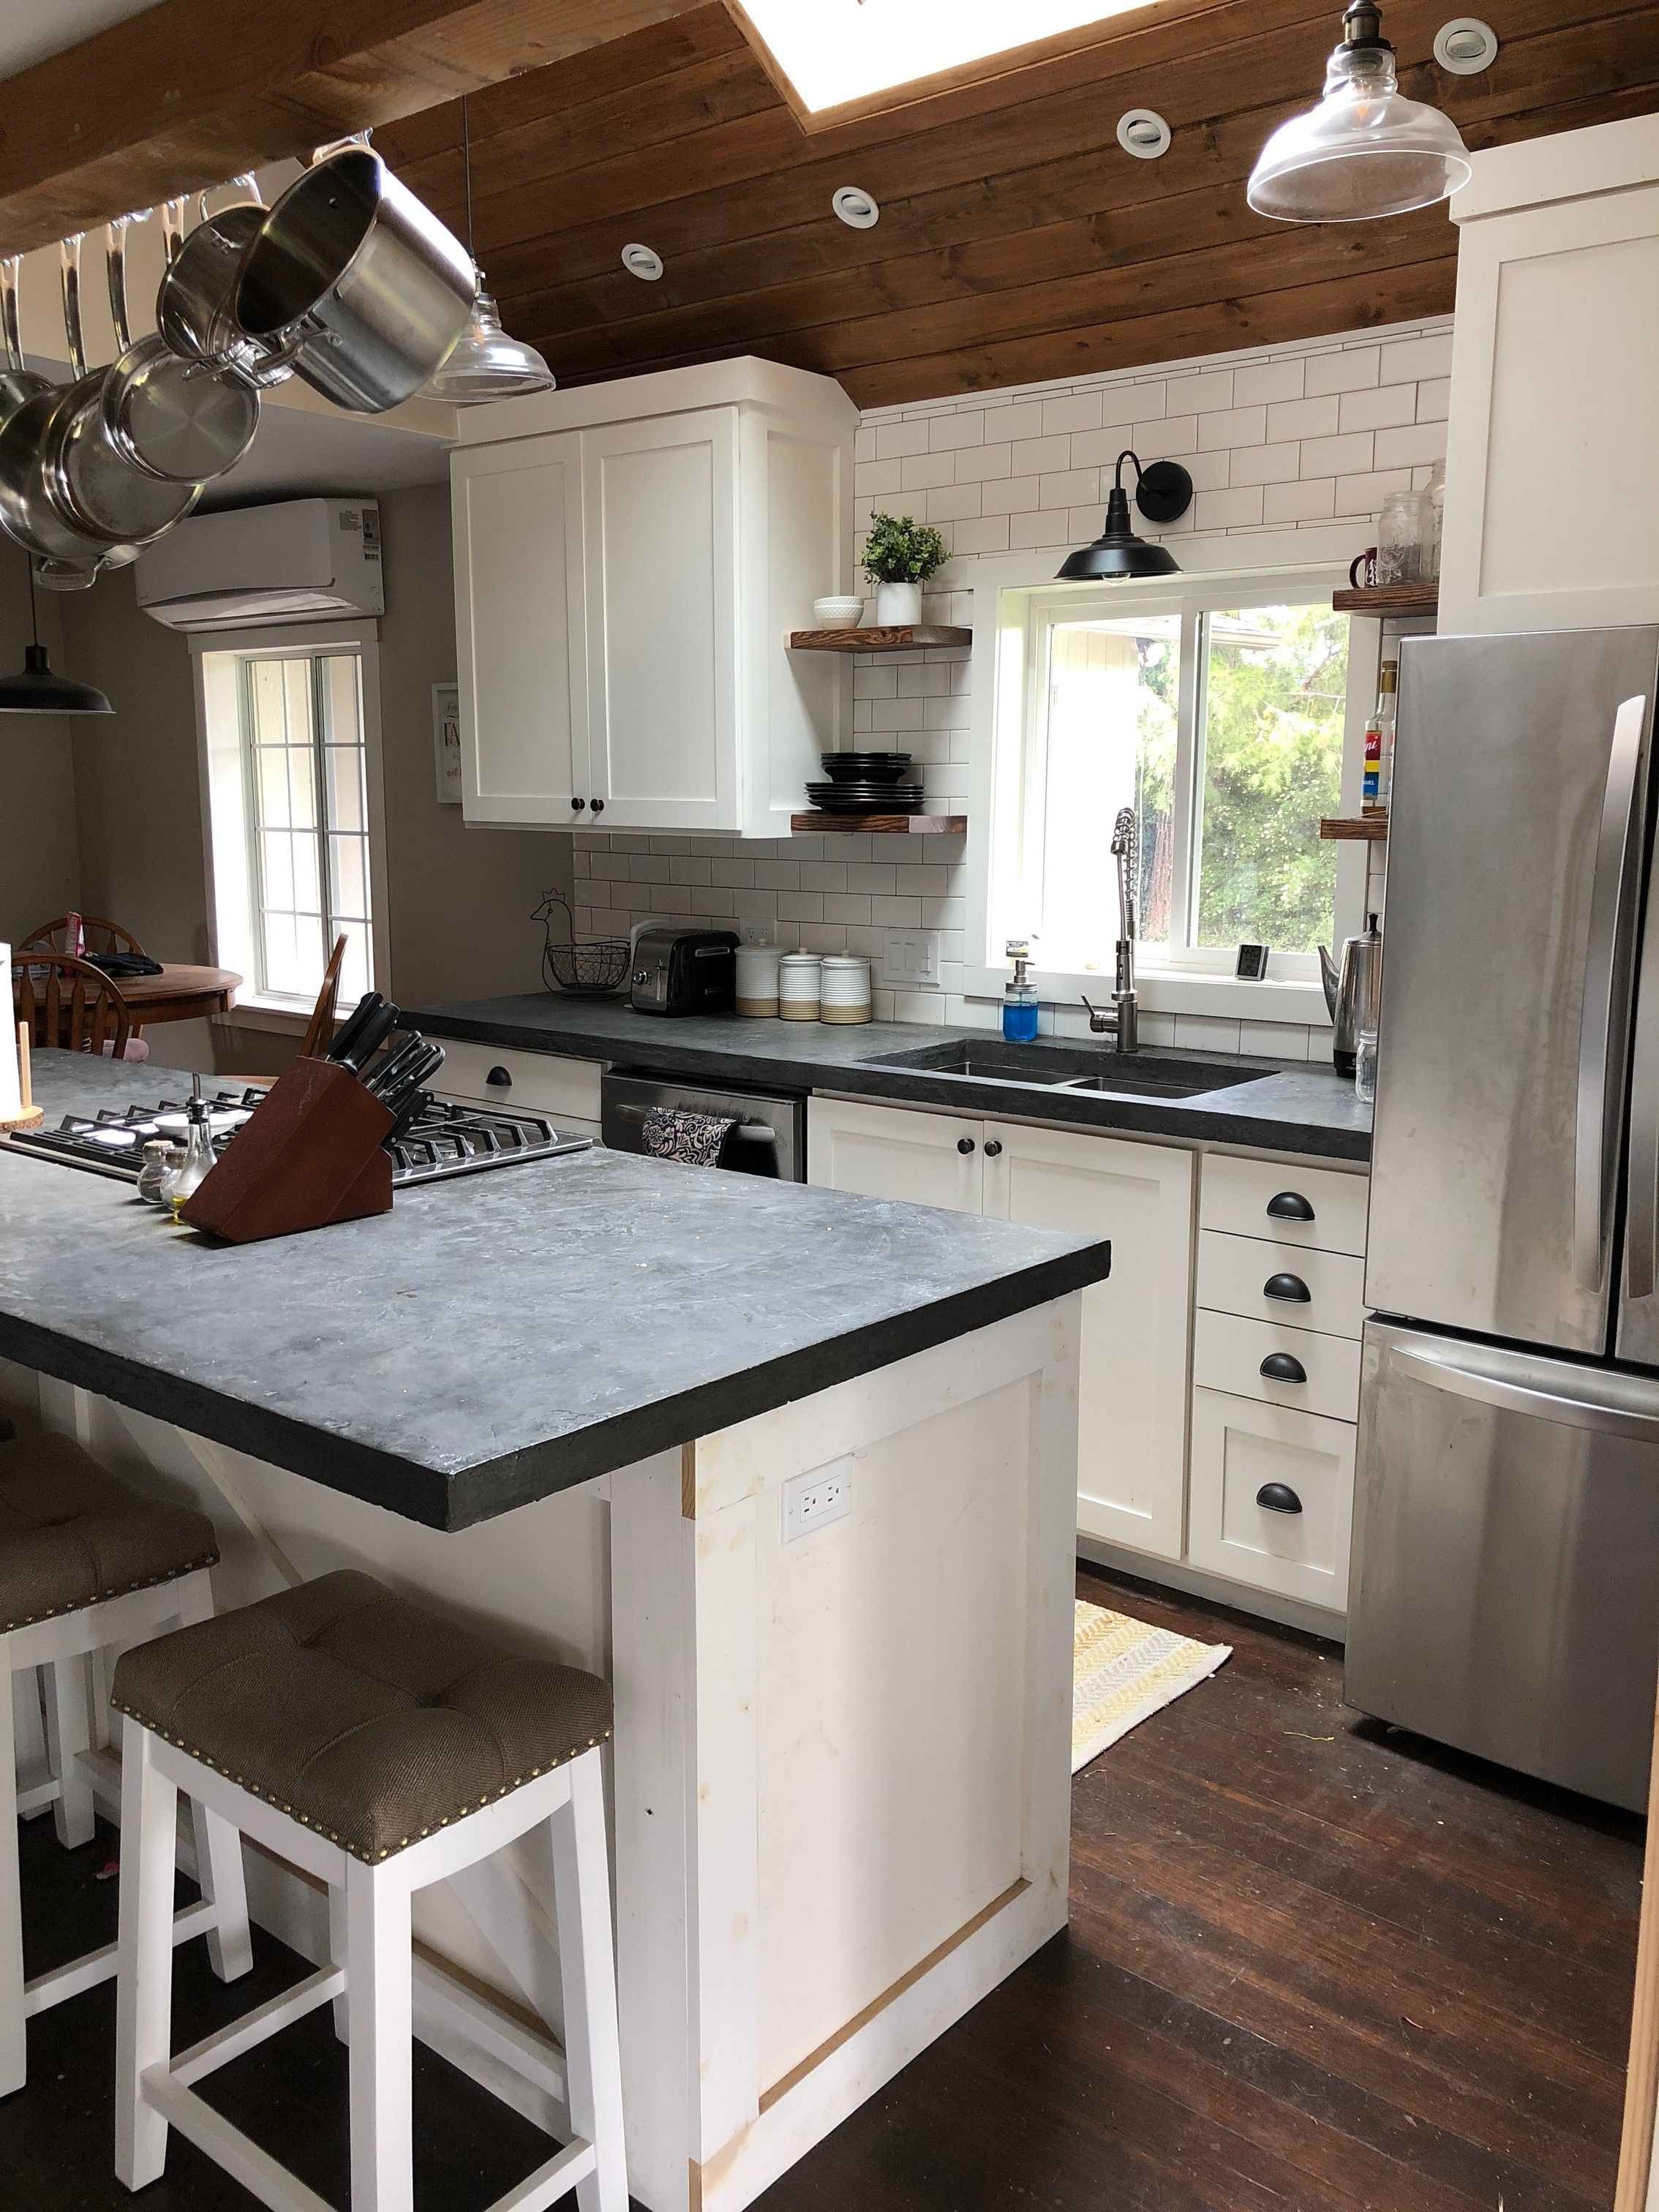 DIY farmhouse kitchen with concrete countertops and